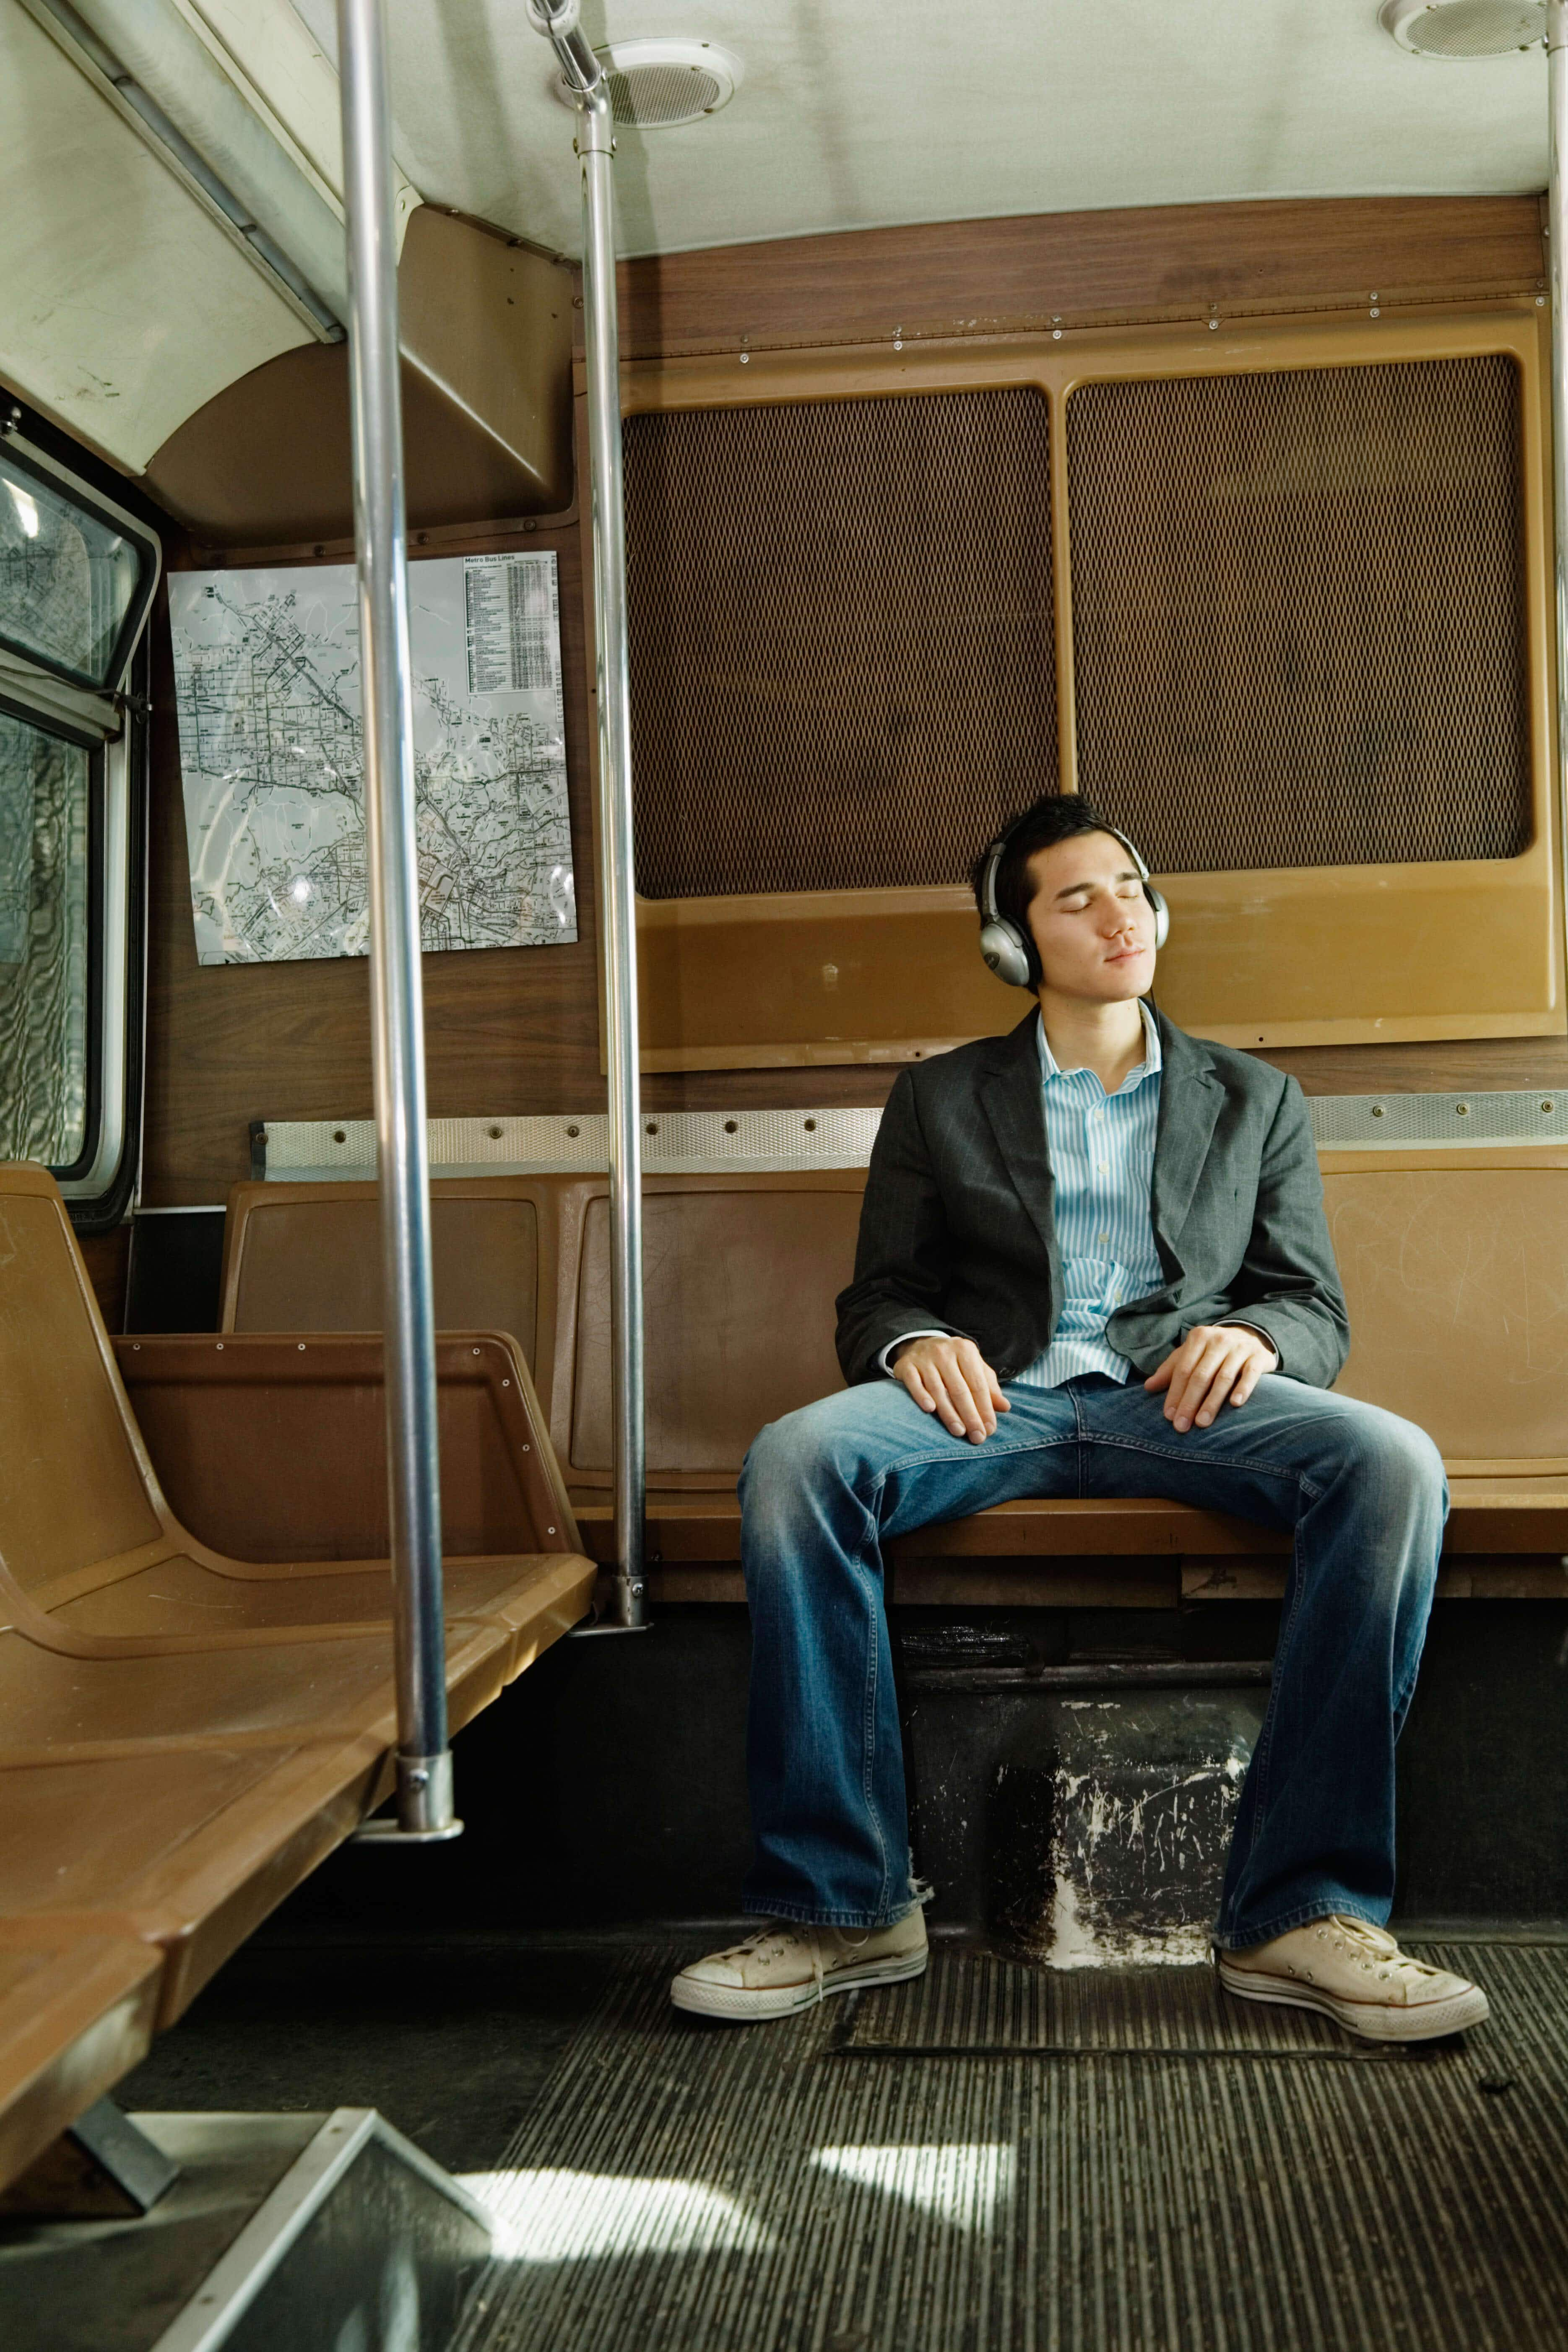 Manspreading on public transport in Madrid has just been made illegal